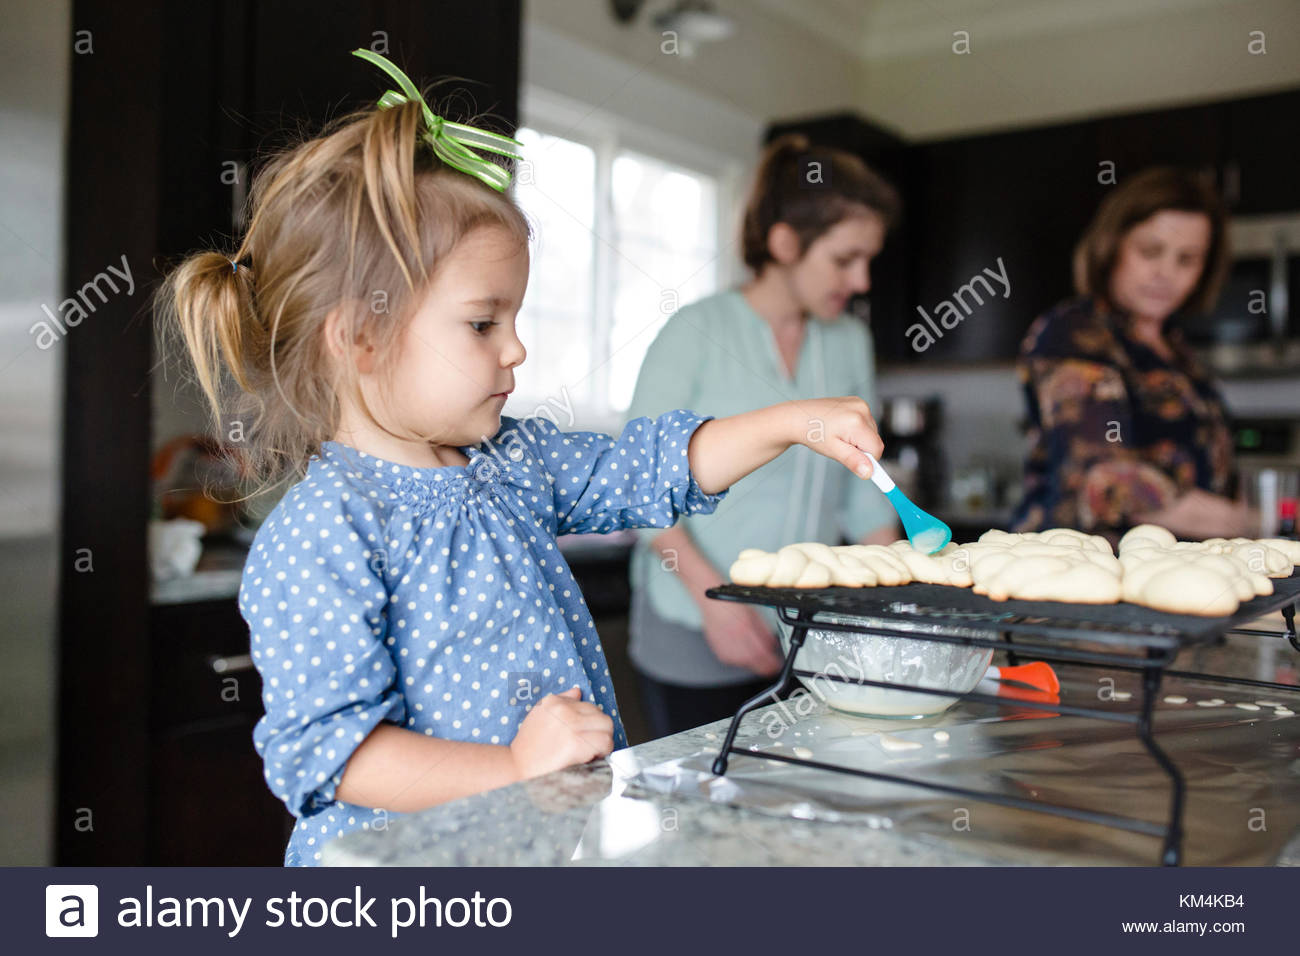 Young girl with green ribbon in her hair standing in a kitchen, holding a spoon, decorating cookies, two women in - Stock Image